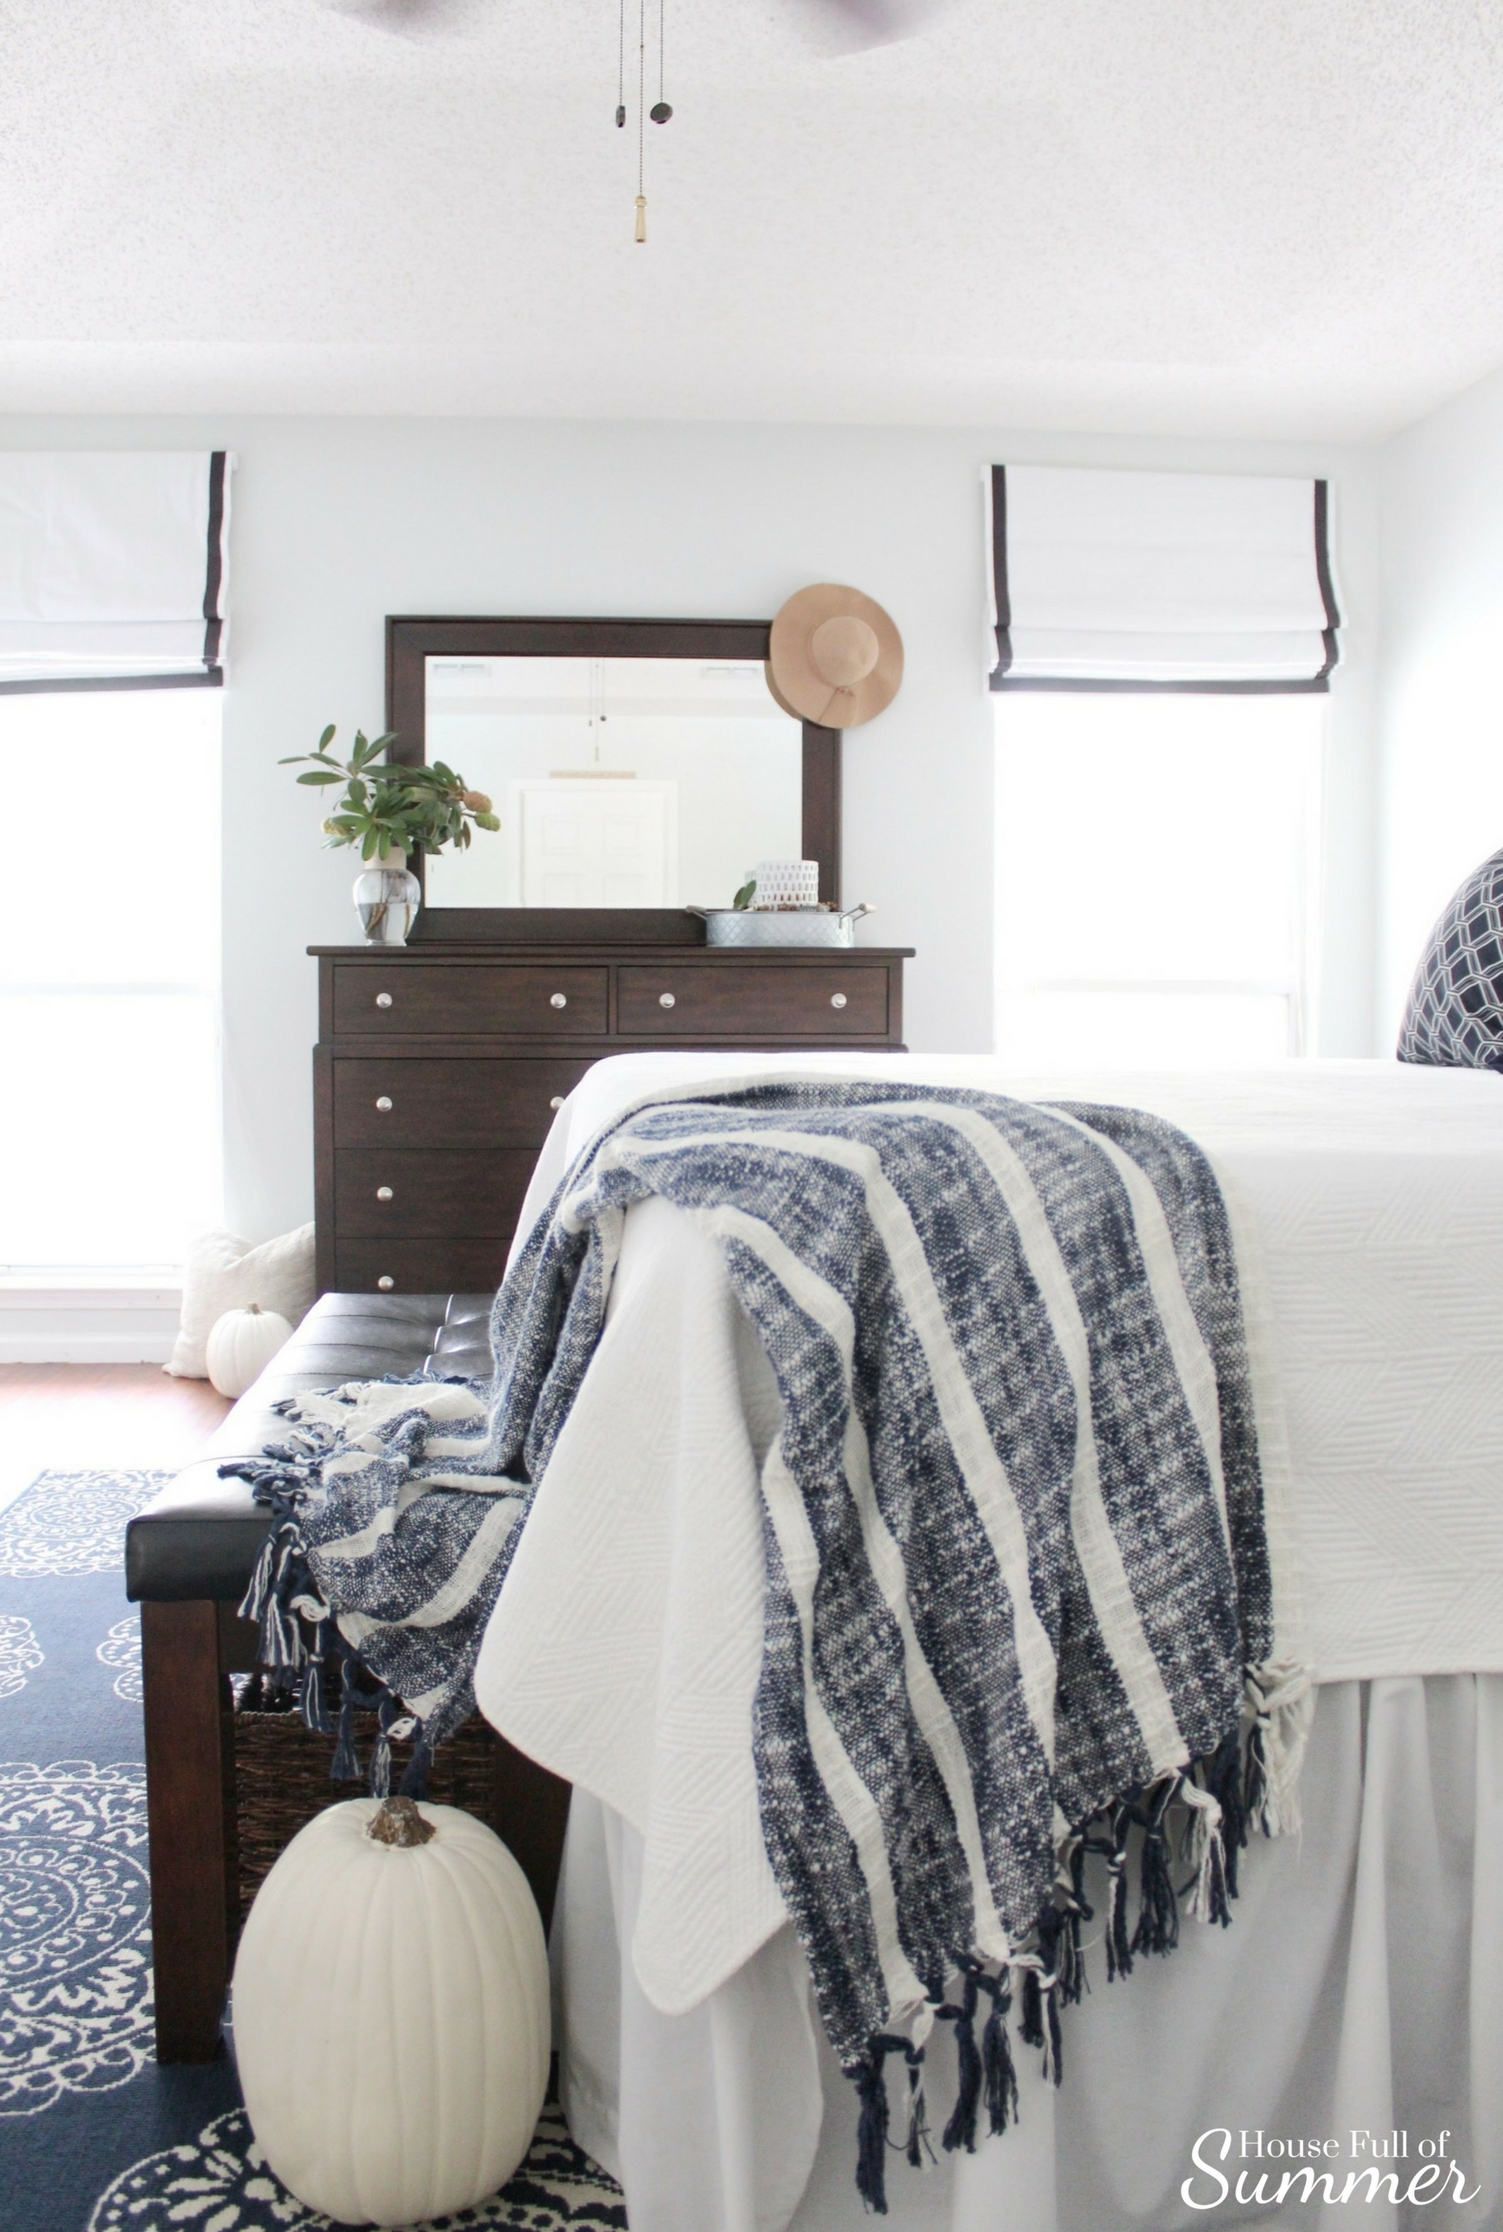 House Full of Summer: Fall Home Tour Blog Hop - Cozy, Coastal, Chic Master Bedroom decor, decorating on a budget,fall decor ideas, coastal bedroom ideas, tray styling, diy fall decor, roman shades, pottery barn style, blue and white bedroom decor, navy and white, navy rug, indoor/outdoor area rug, fall styling, nautical decor